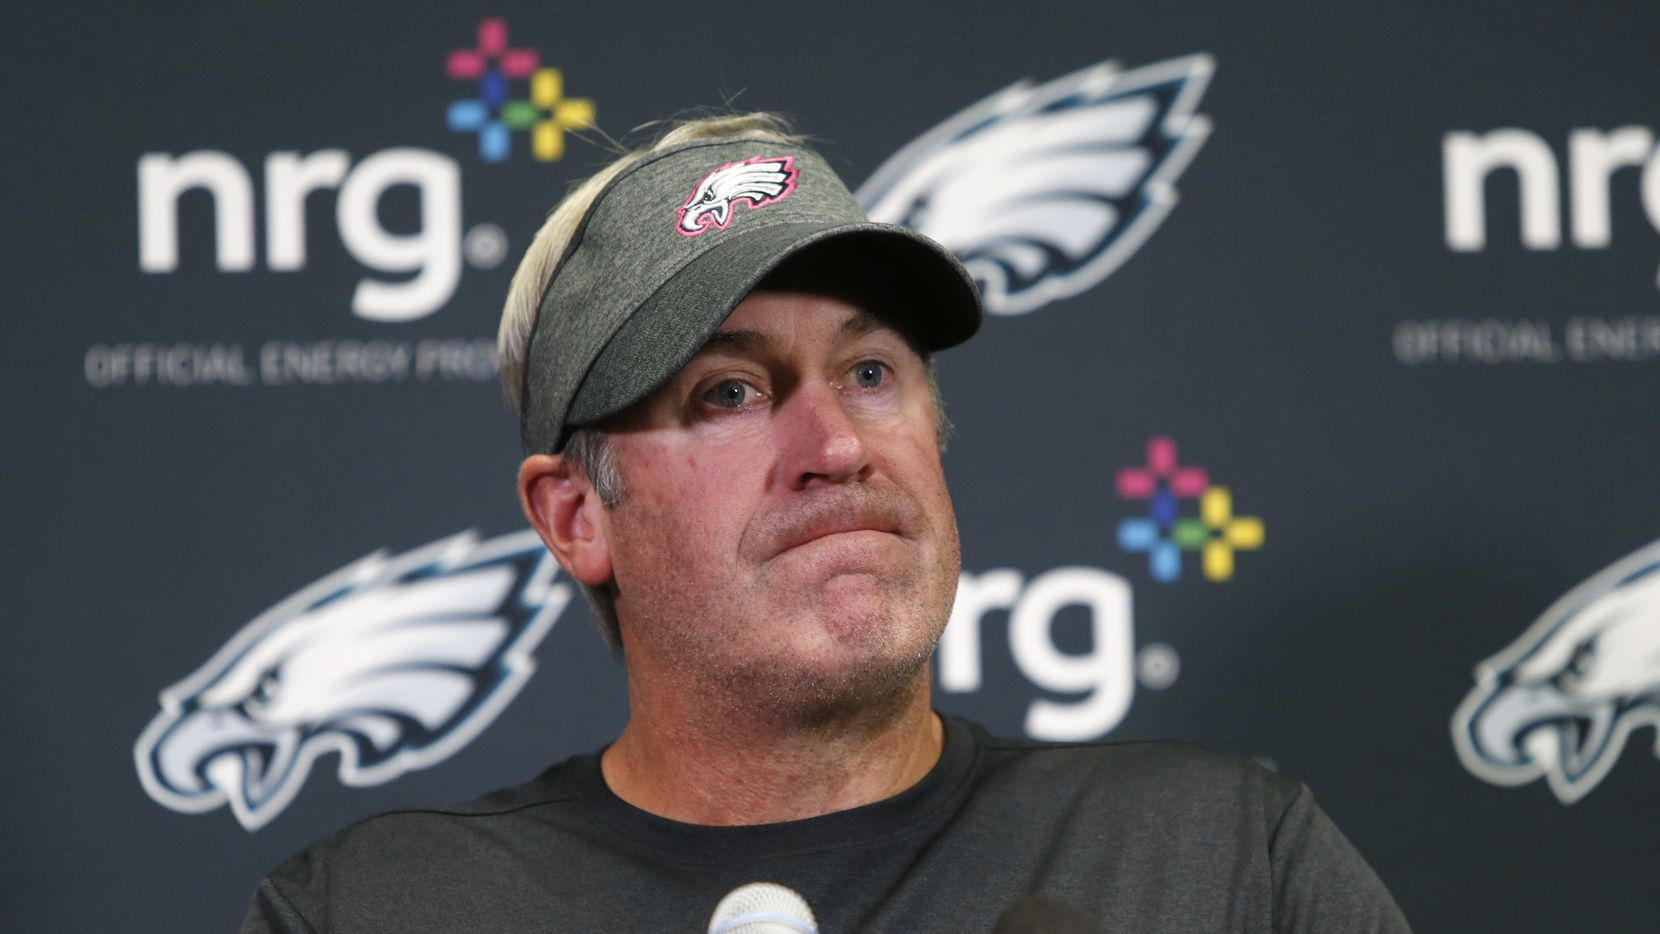 Philadelphia Eagles head coach Doug Pederson speaks during a news conference after an NFL football game against the Minnesota Vikings, Sunday, Oct. 13, 2019, in Minneapolis. The Vikings won 38-20. (AP Photo/Bruce Kluckhohn)